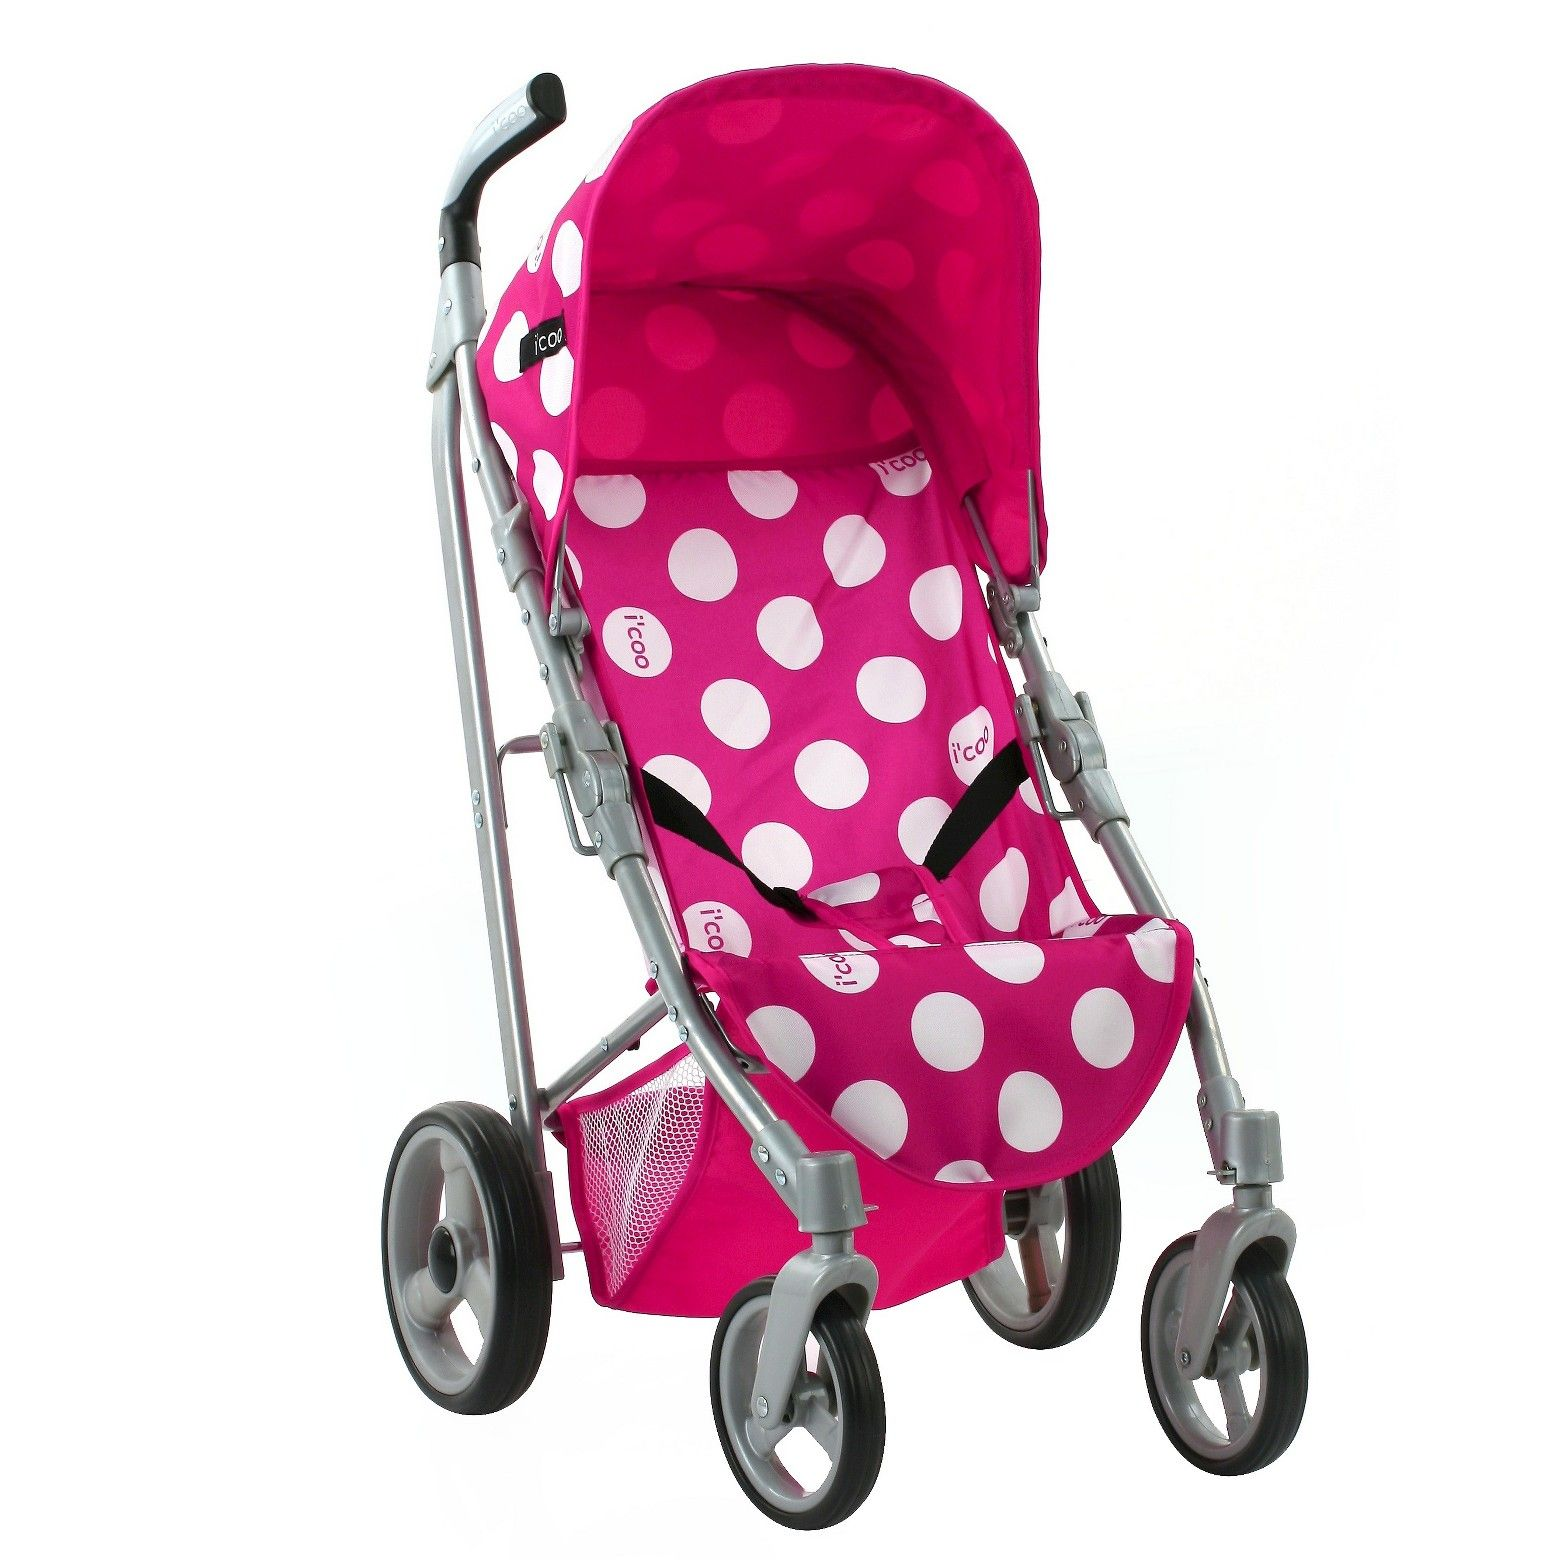 6142f8aa2283f Icoo Pluto Doll Stroller - Introducing the ultimate stylish